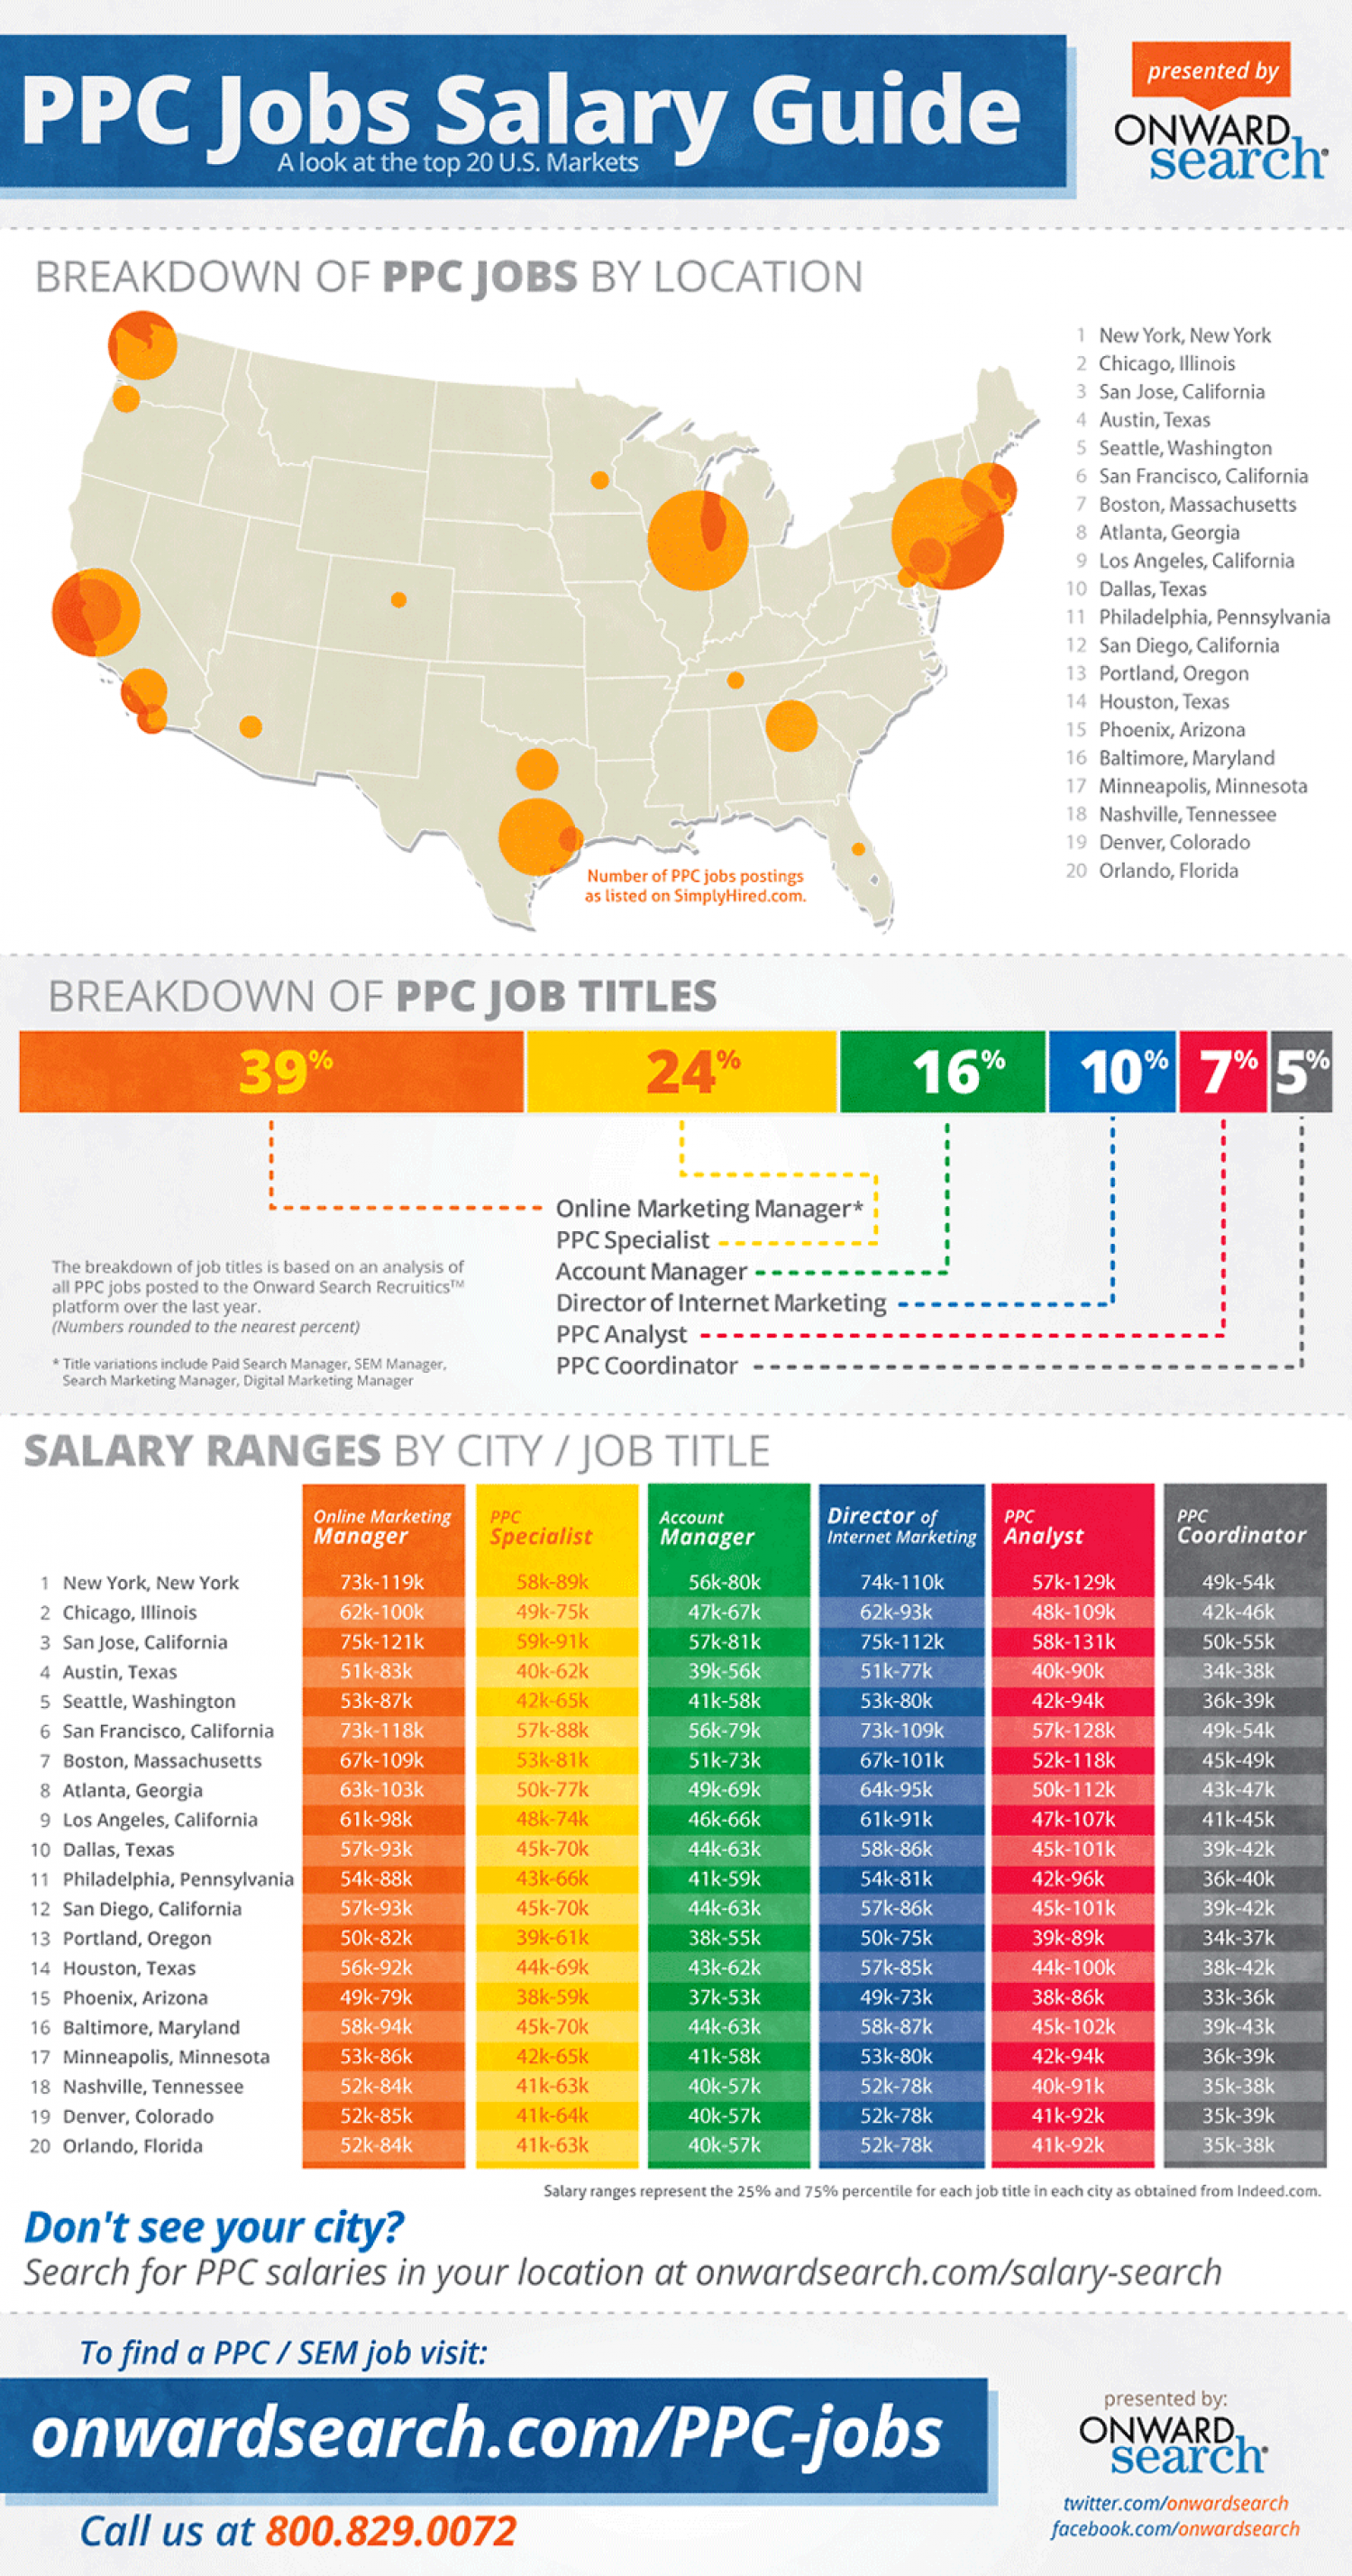 PPC Jobs Salary Guide Infographic